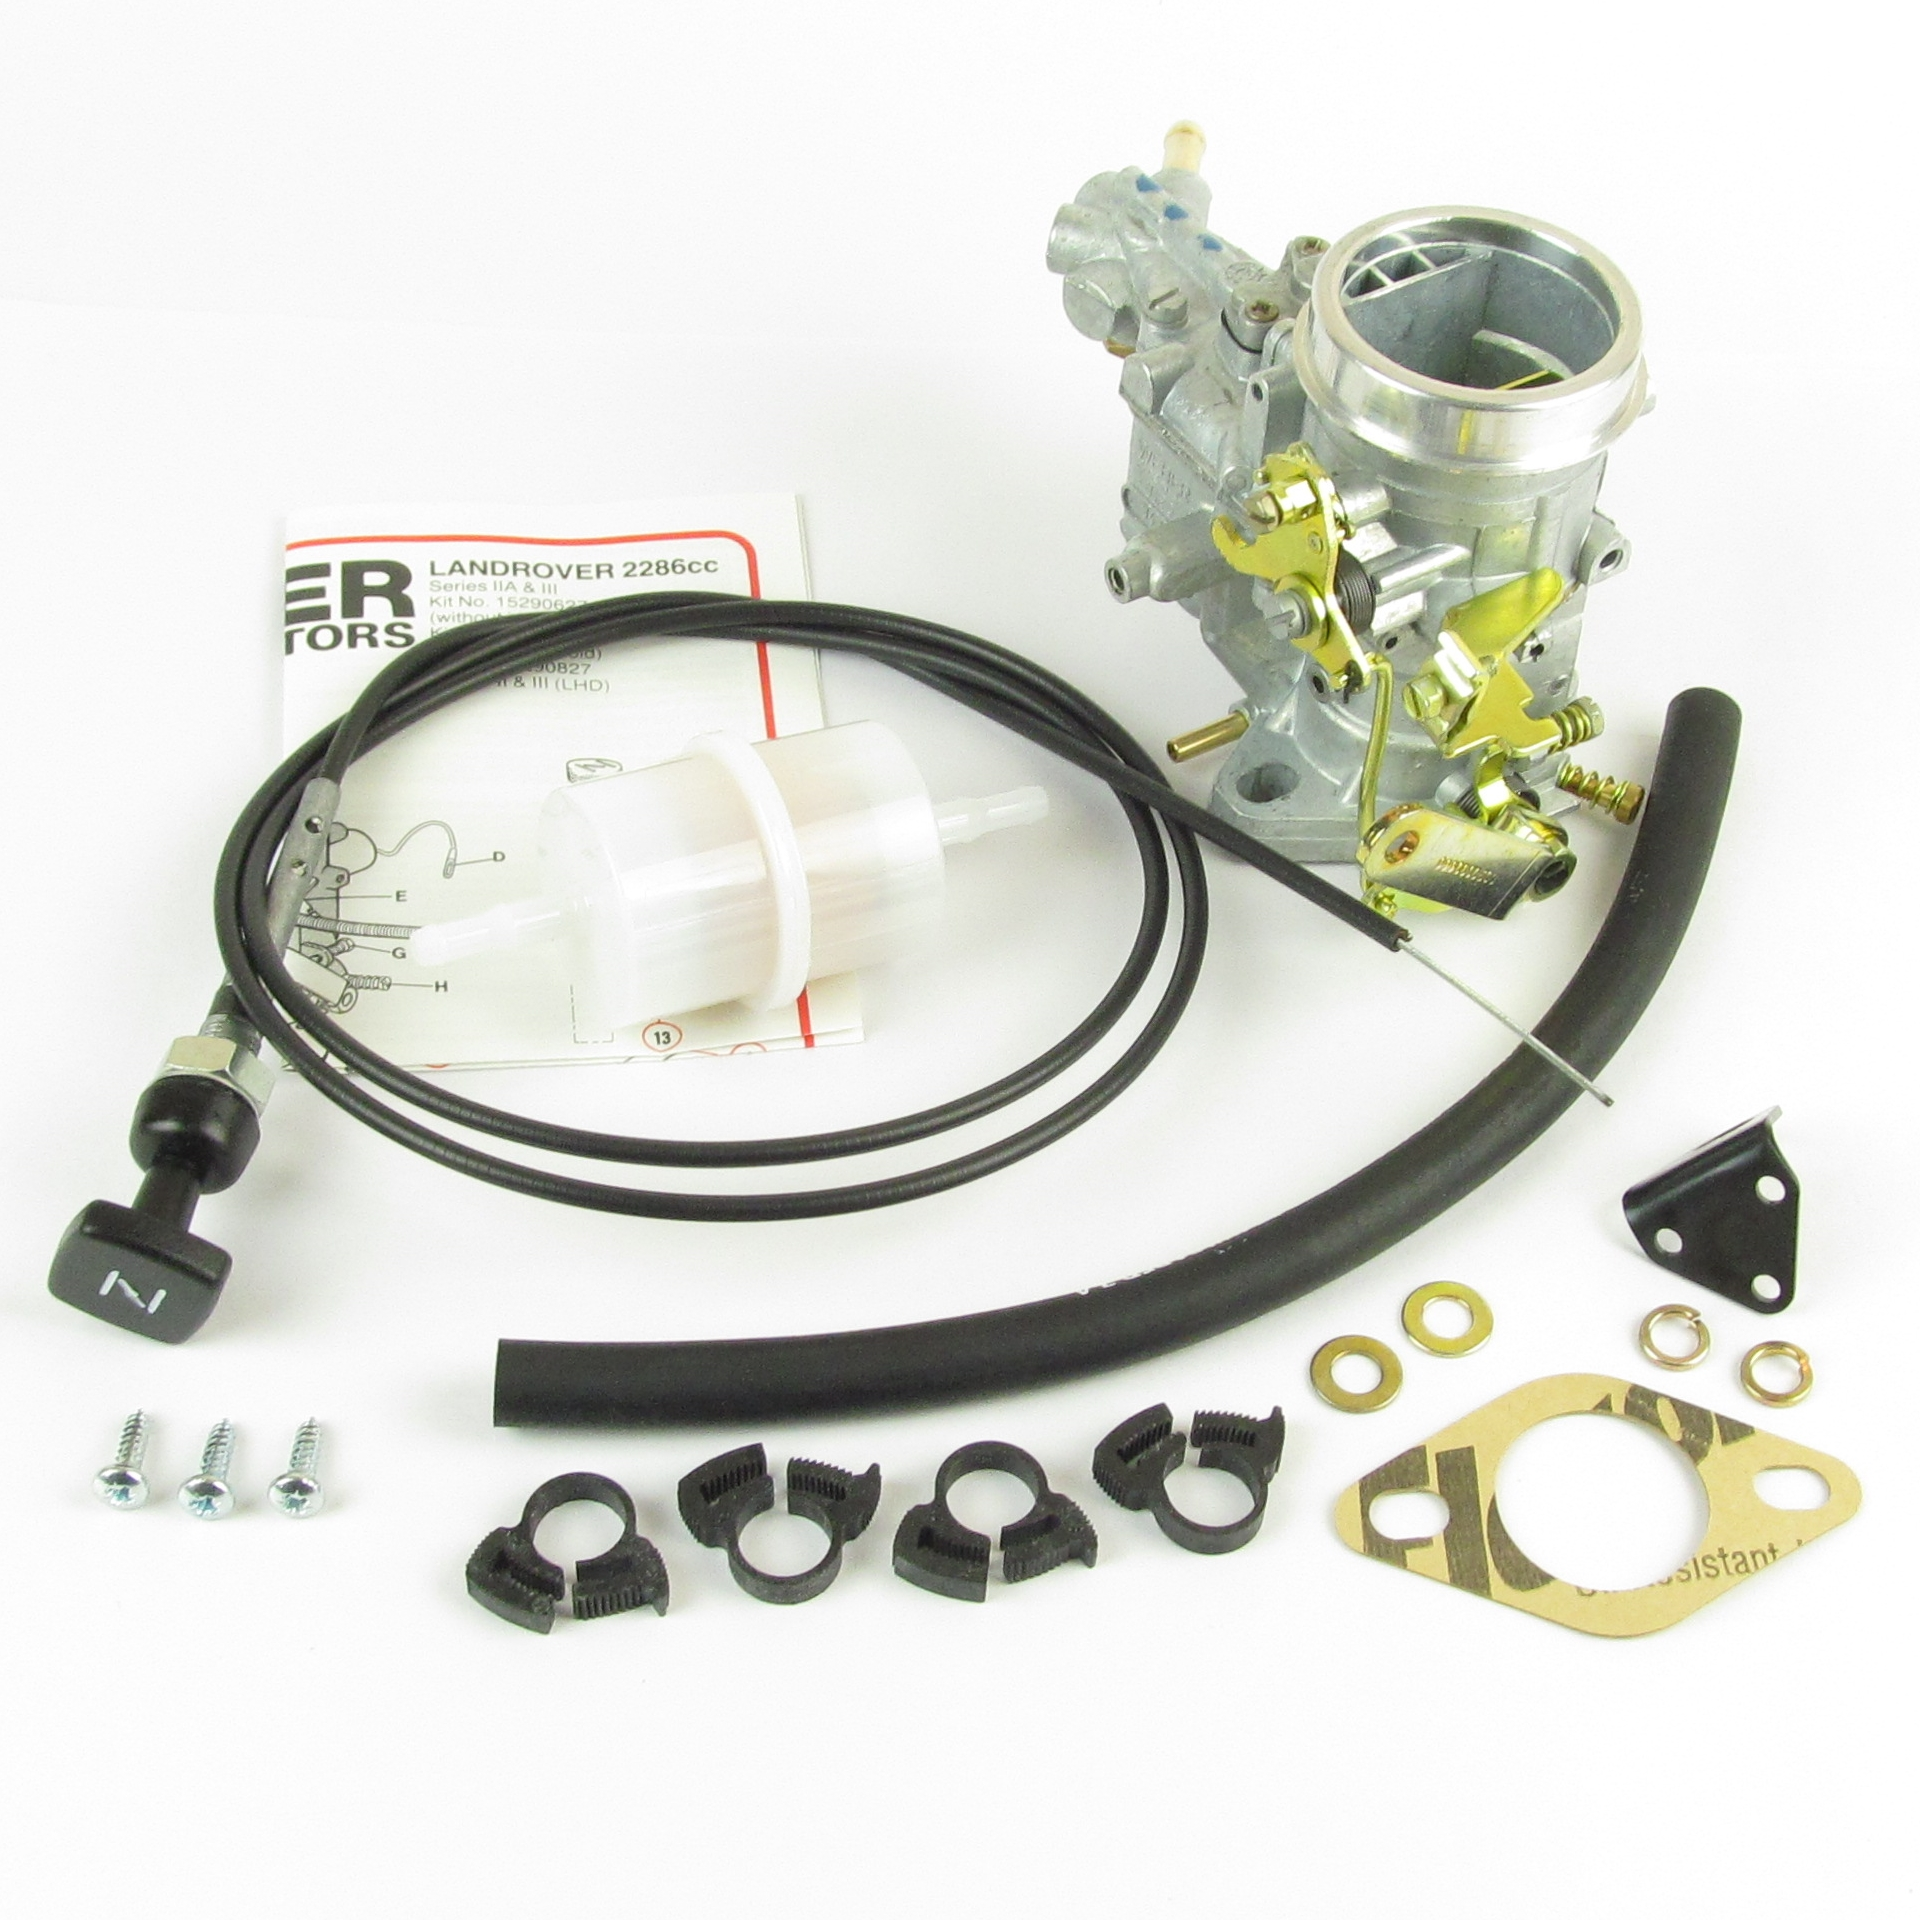 WEBER 34 ICH CARBURETTOR CONVERSION KIT FOR LAND ROVER SERIES 2A & 3